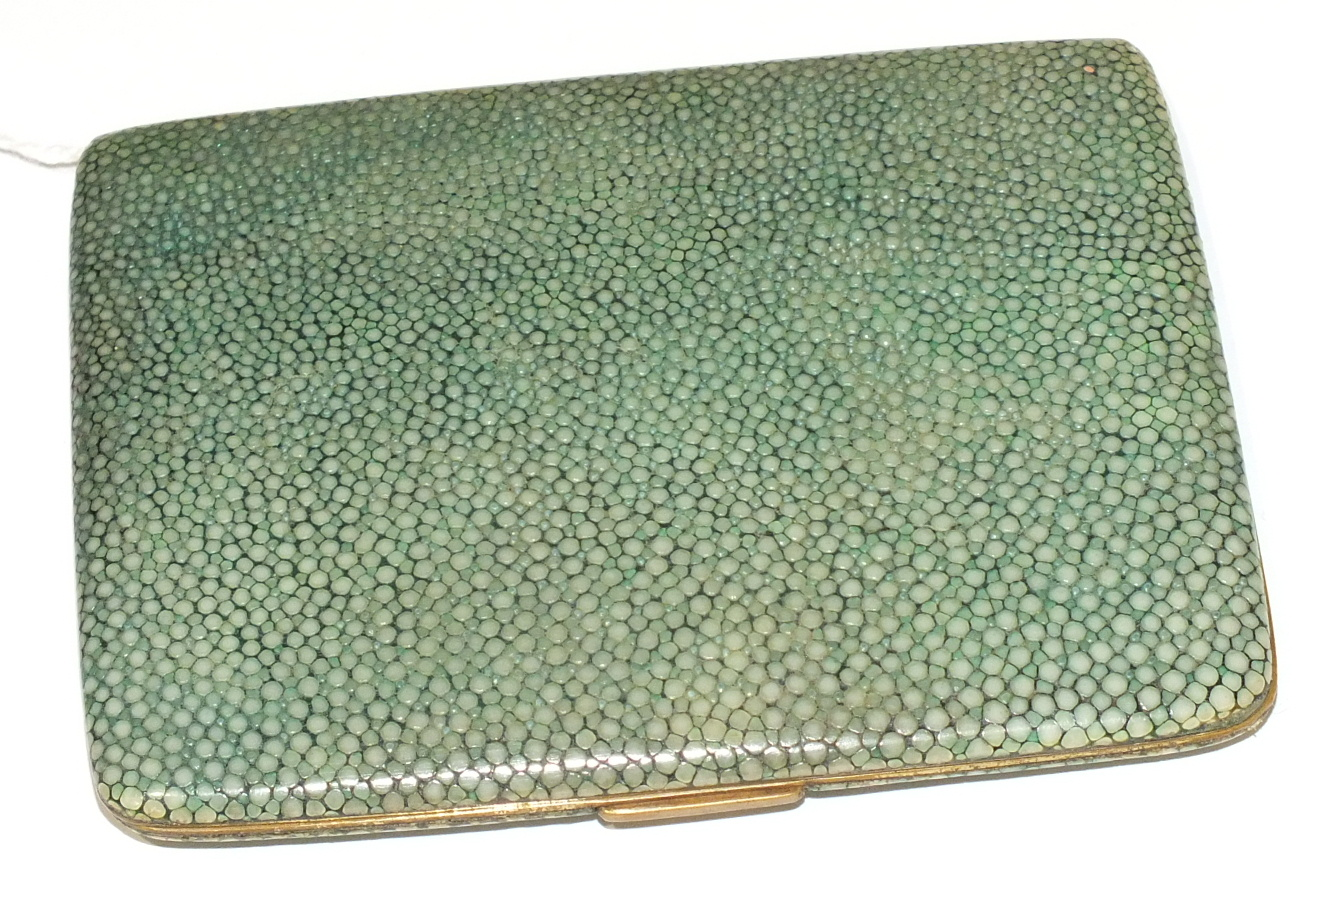 Lot 58 - A gilt metal and shagreen-covered cigarette case of rectangular form, stamped 'Aristocrat, Made in